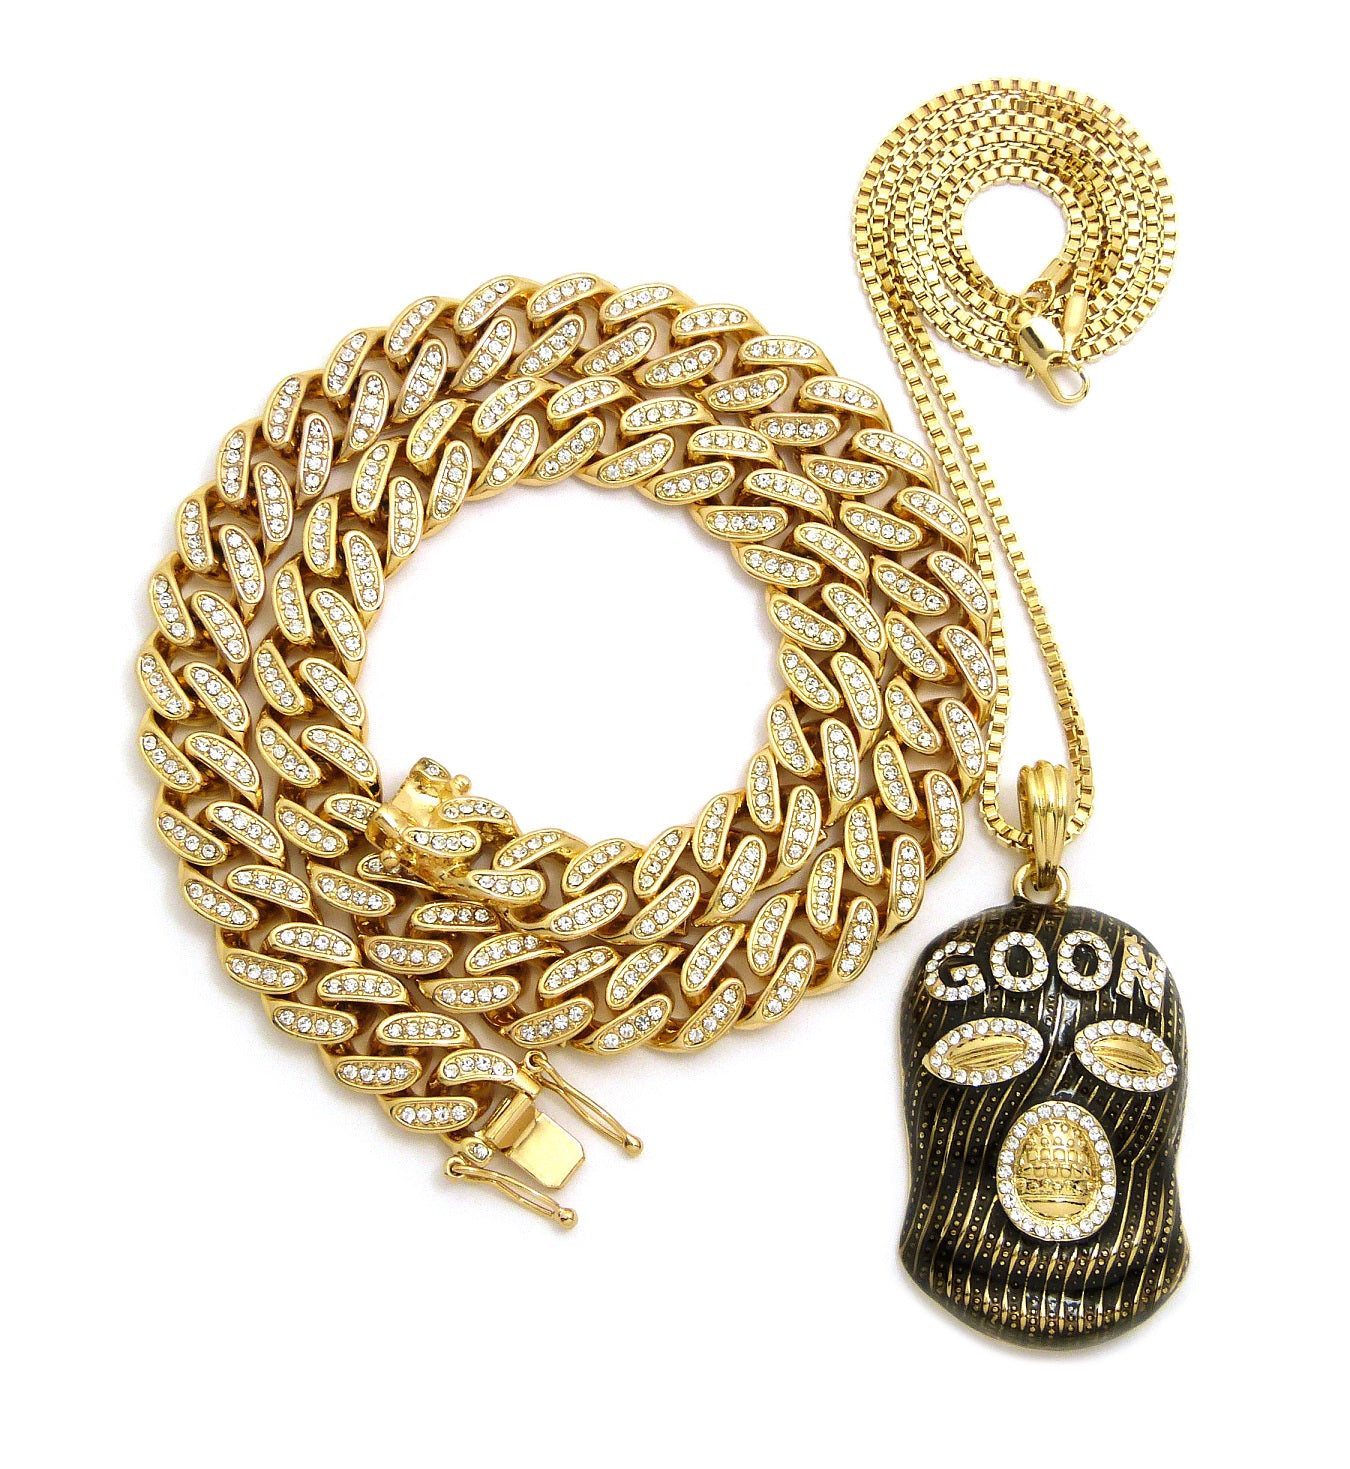 14K Gold Plated Miami Cuban With Goon Chain